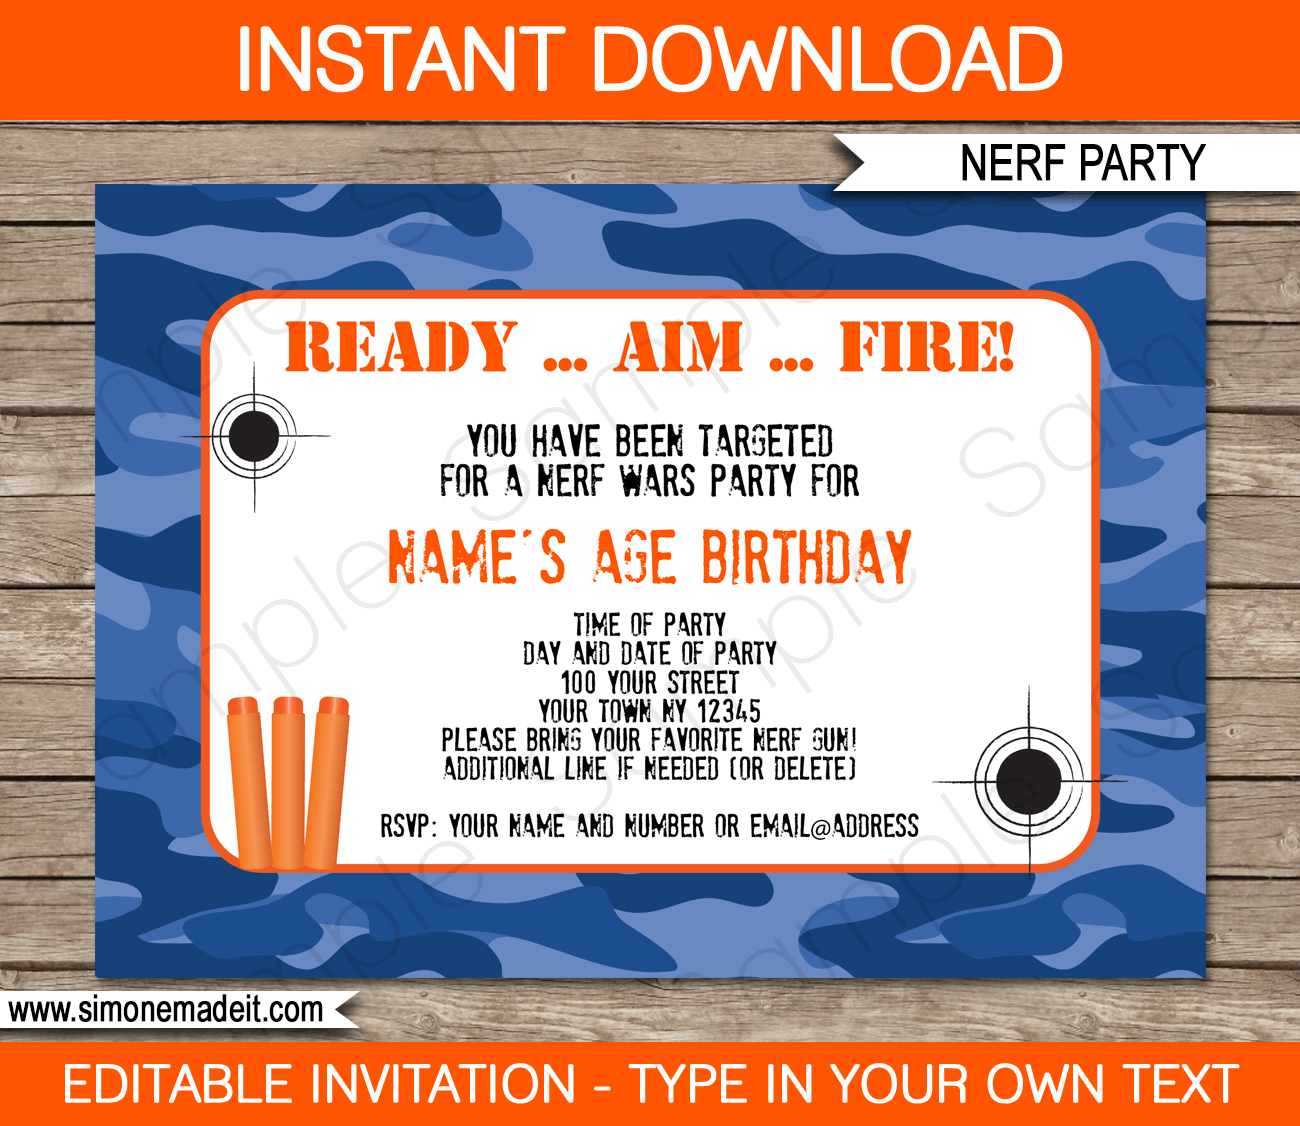 Nerf birthday party invitations editable template blue camo nerf birthday party invitations blue camo editable printable diy template instant download stopboris Choice Image